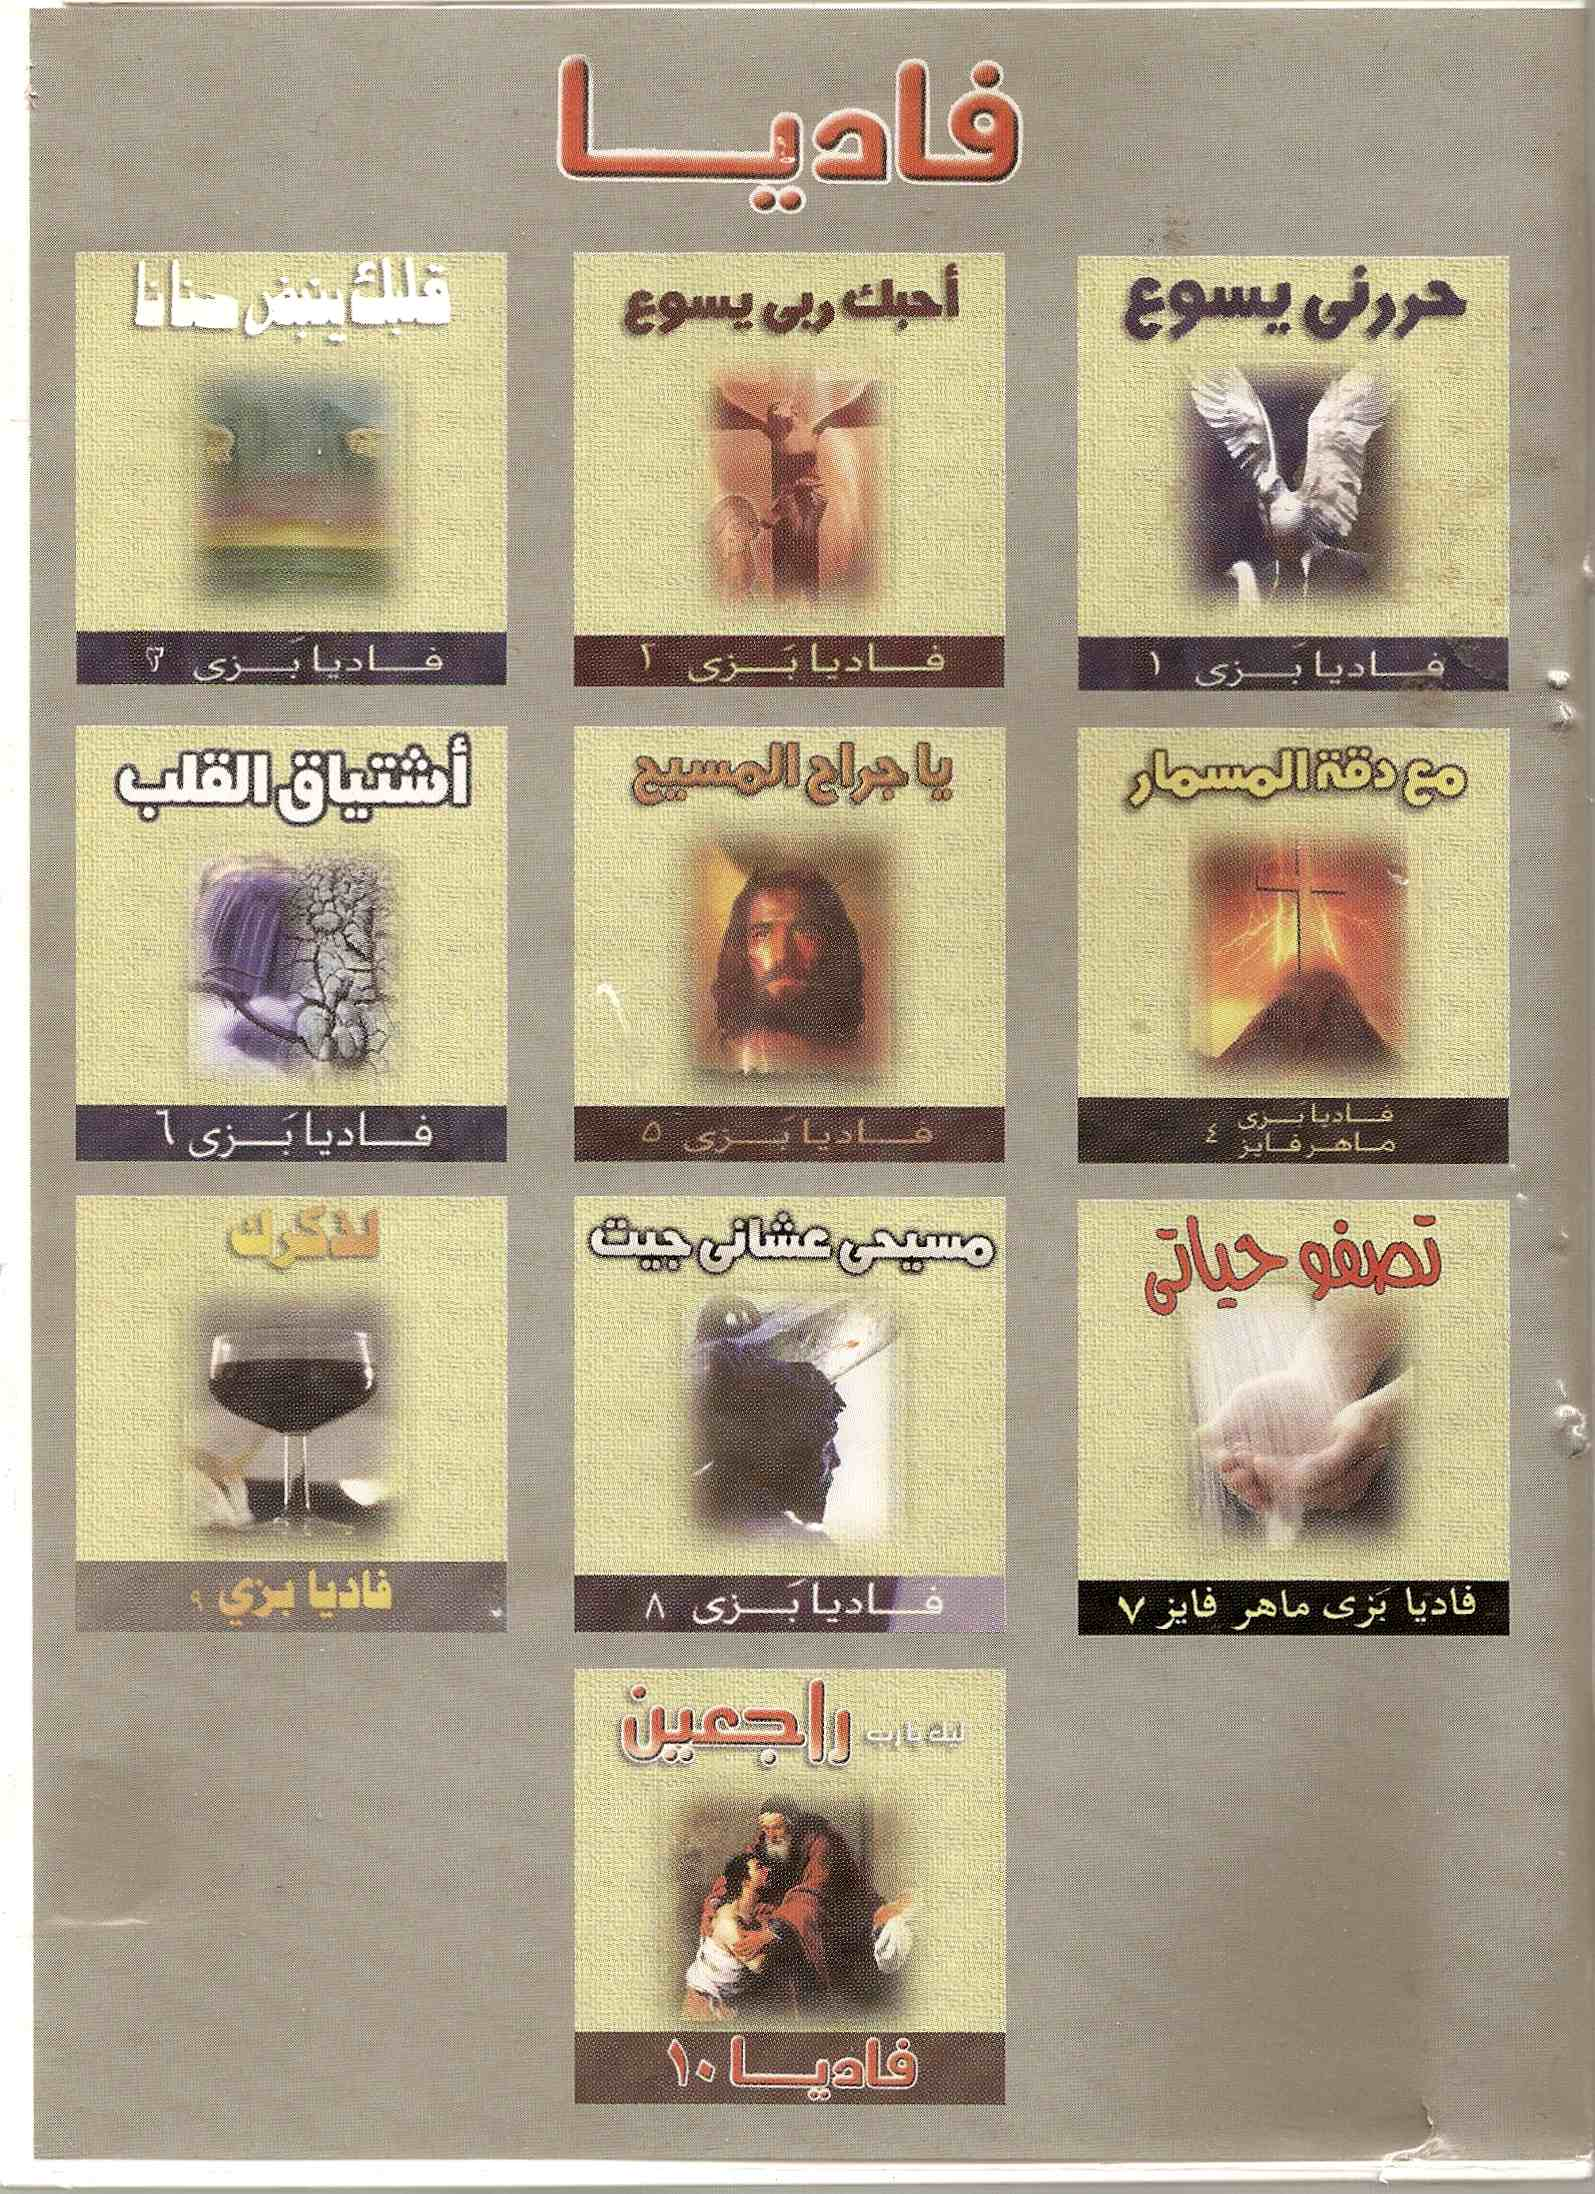 Fadia all together 10 CD Combo Pack with over 100 Songs